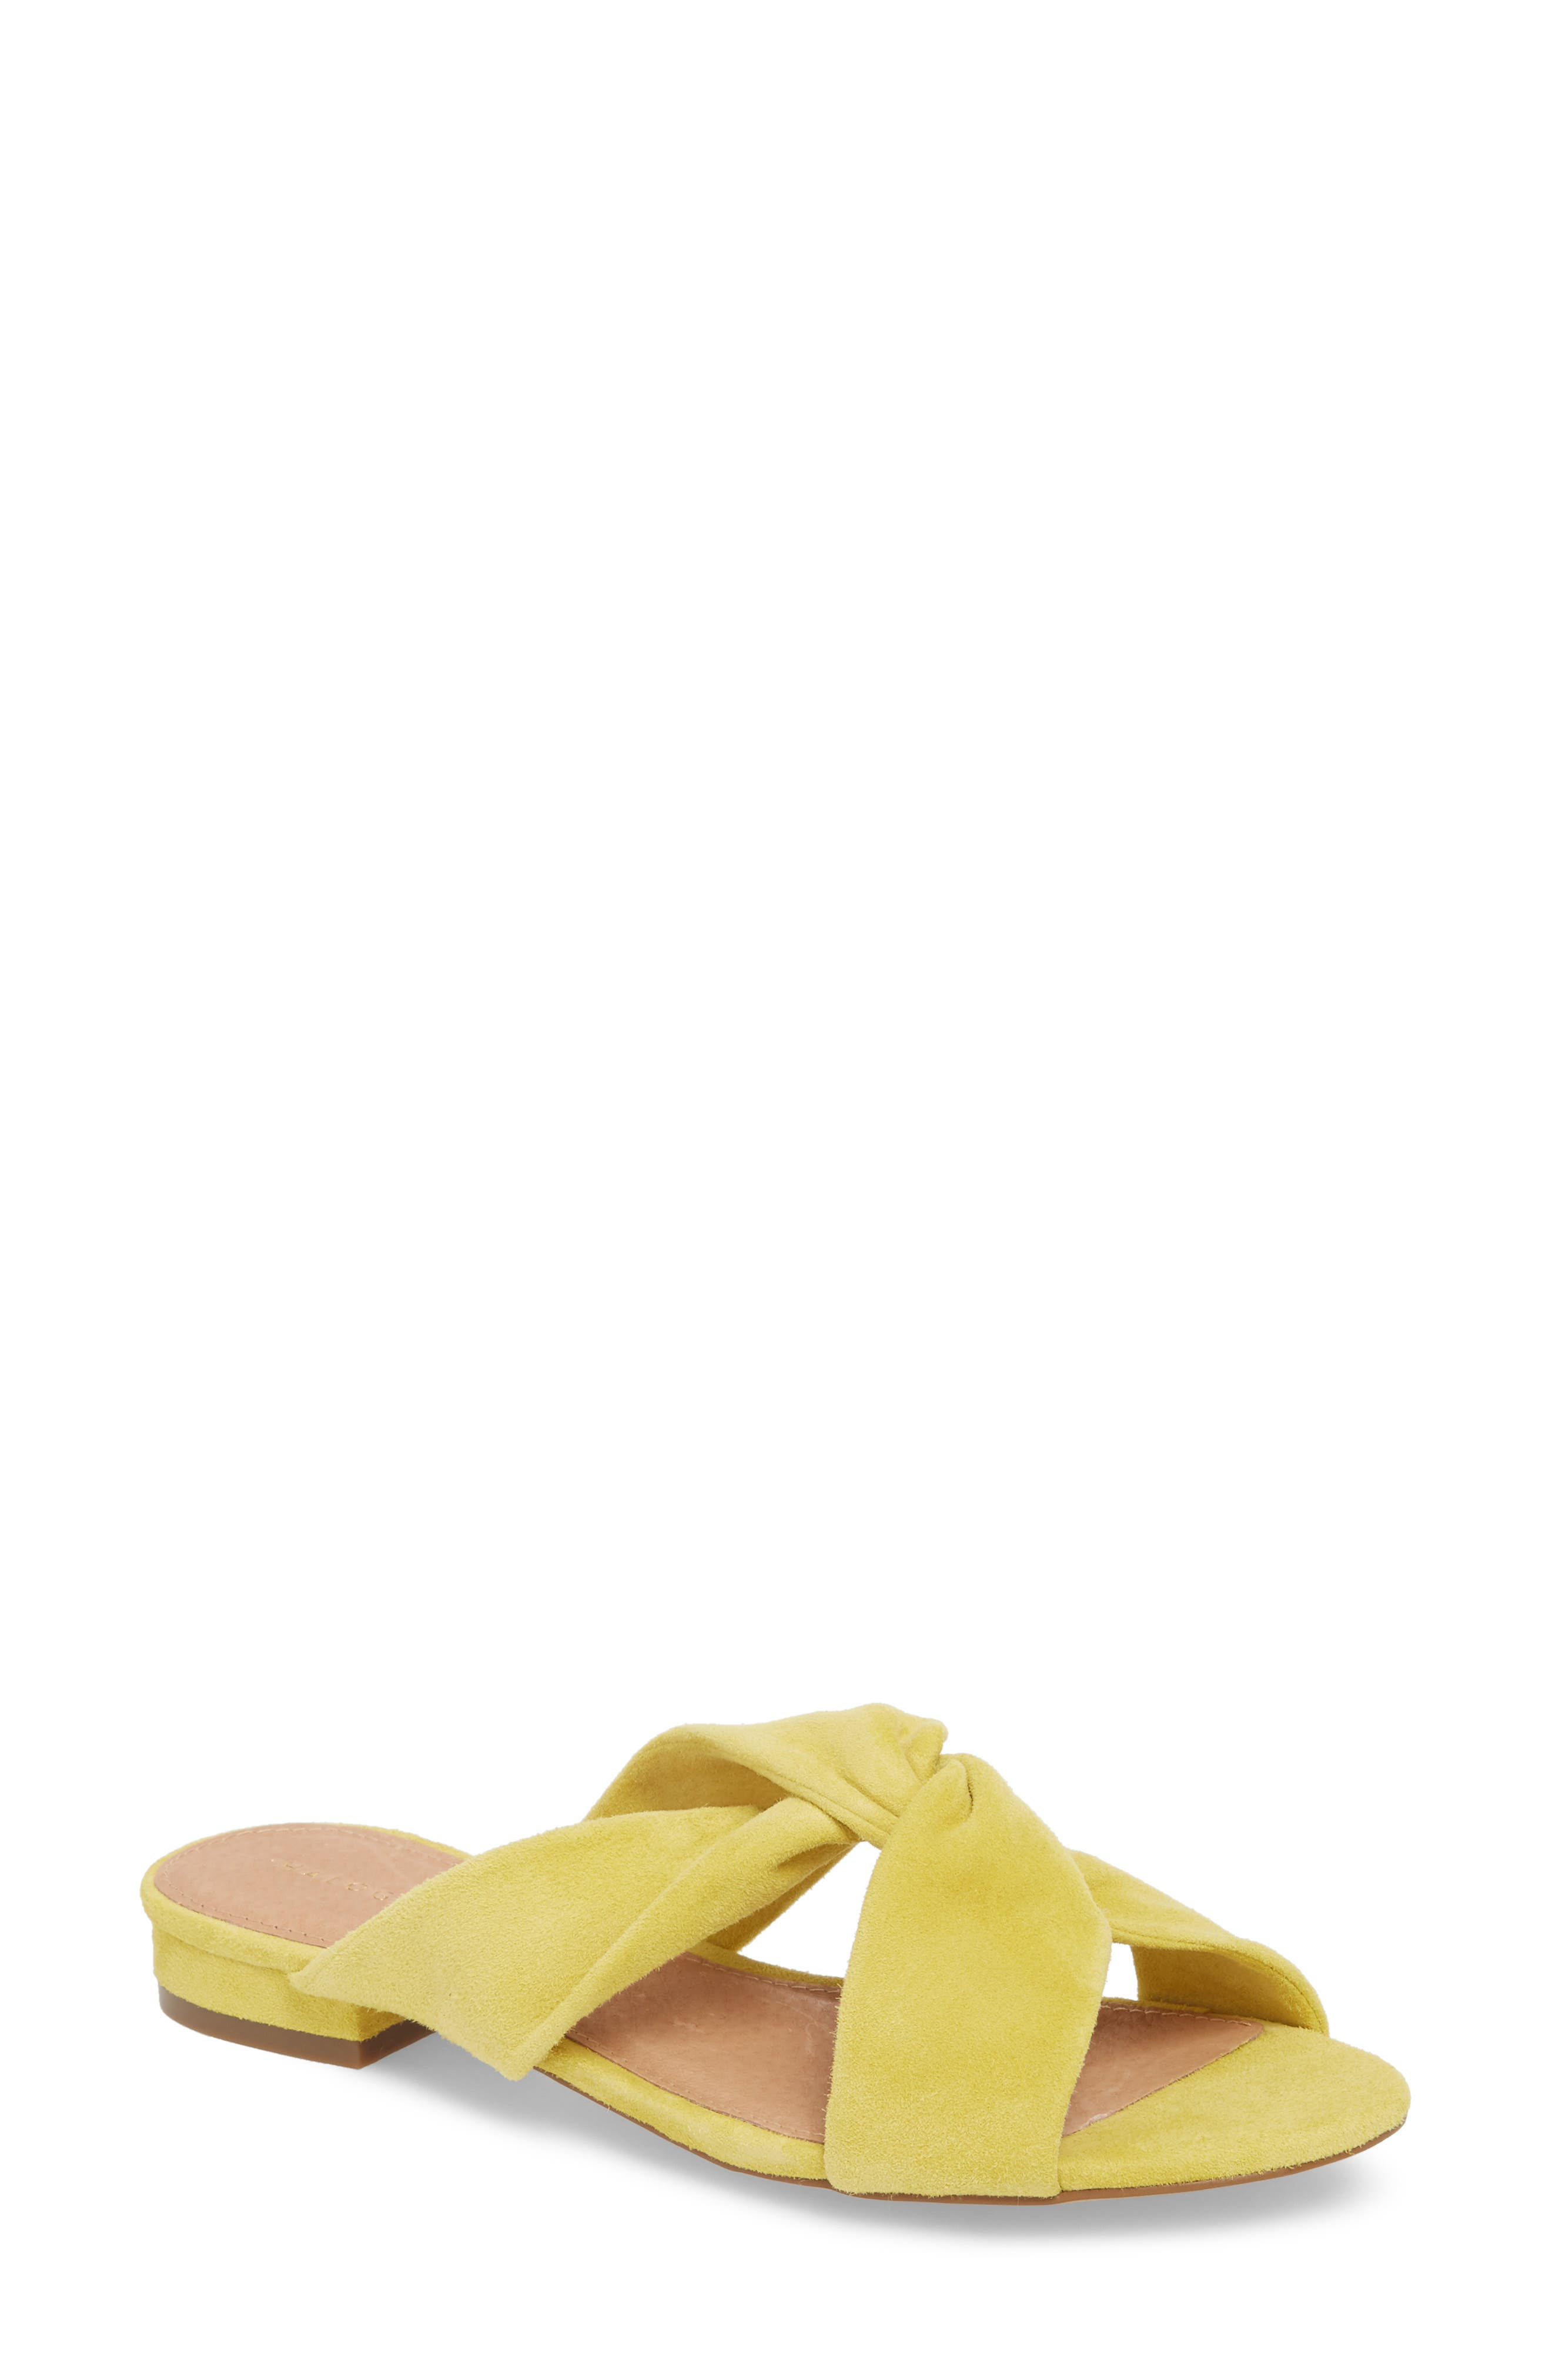 Andre Slide Sandal,                         Main,                         color, Mustard Suede